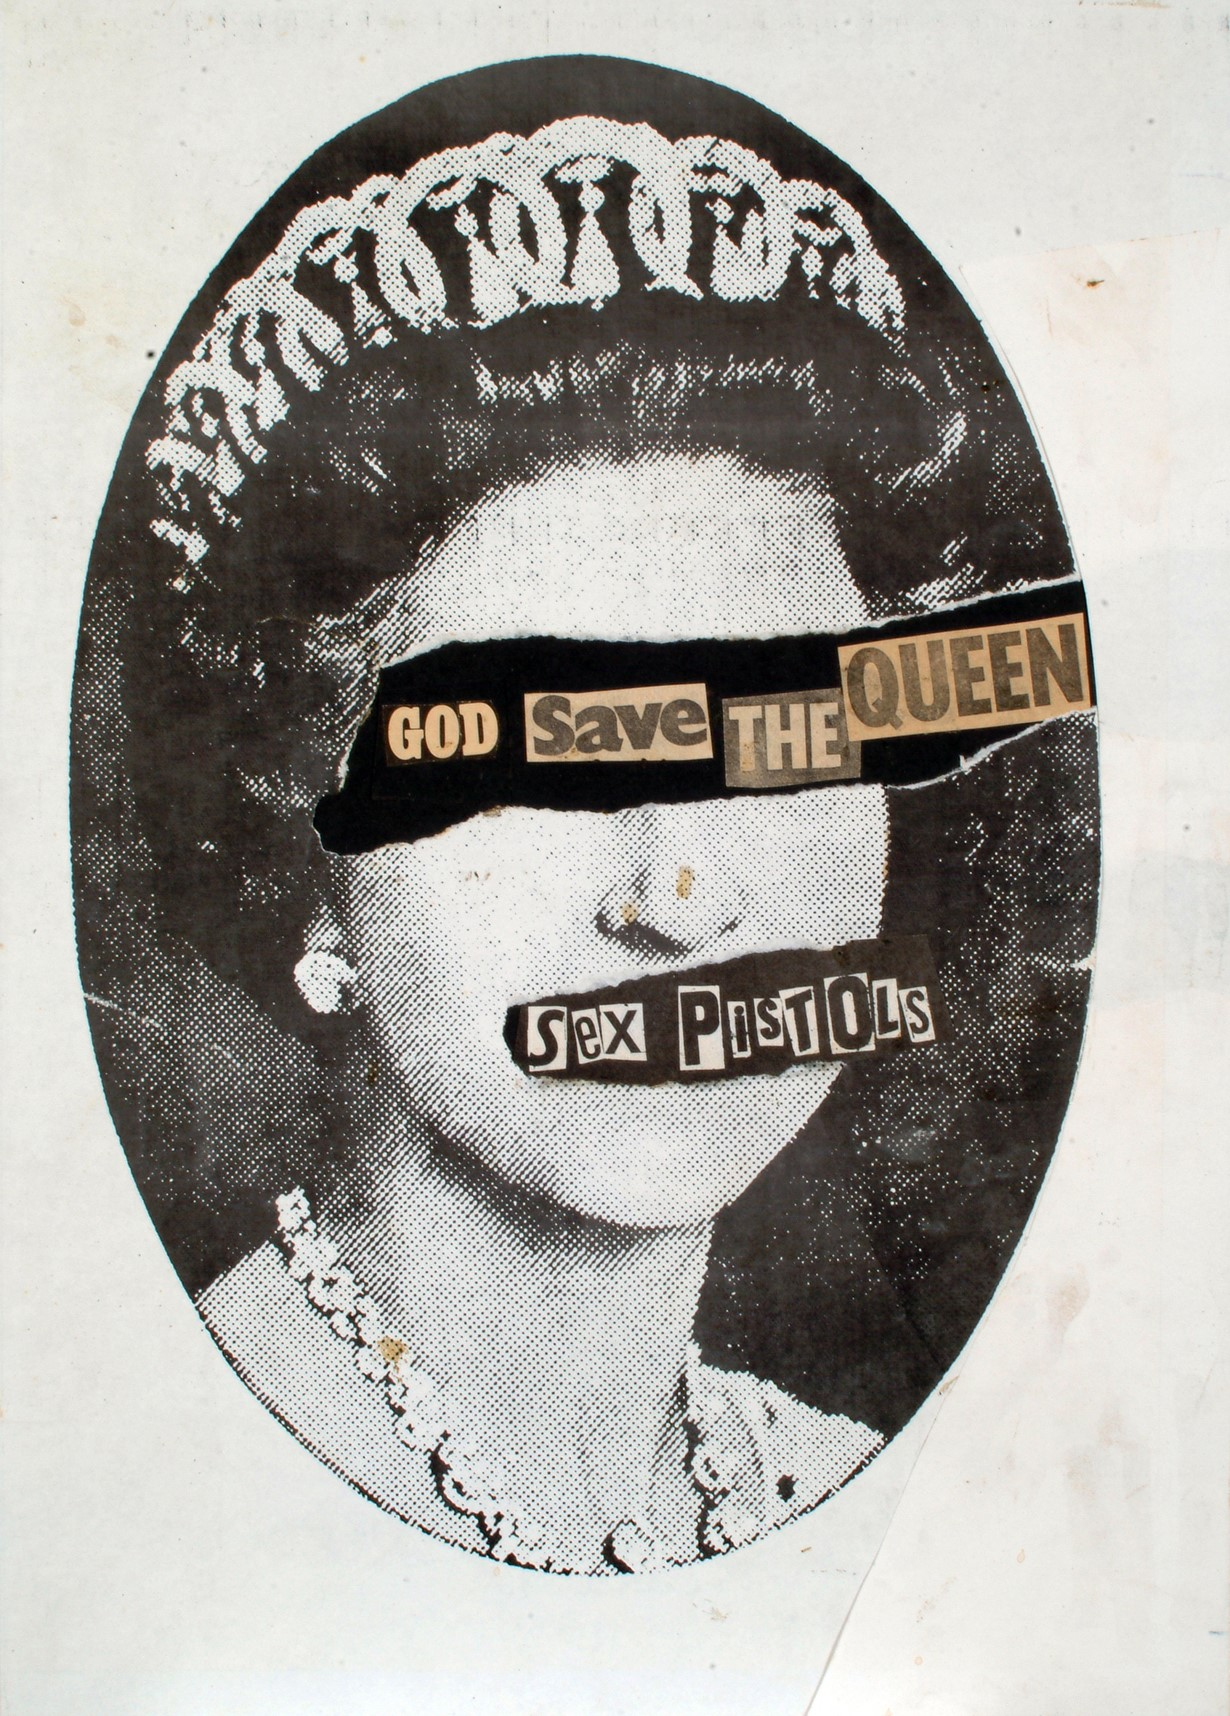 God save the queen - sex pistols images 44